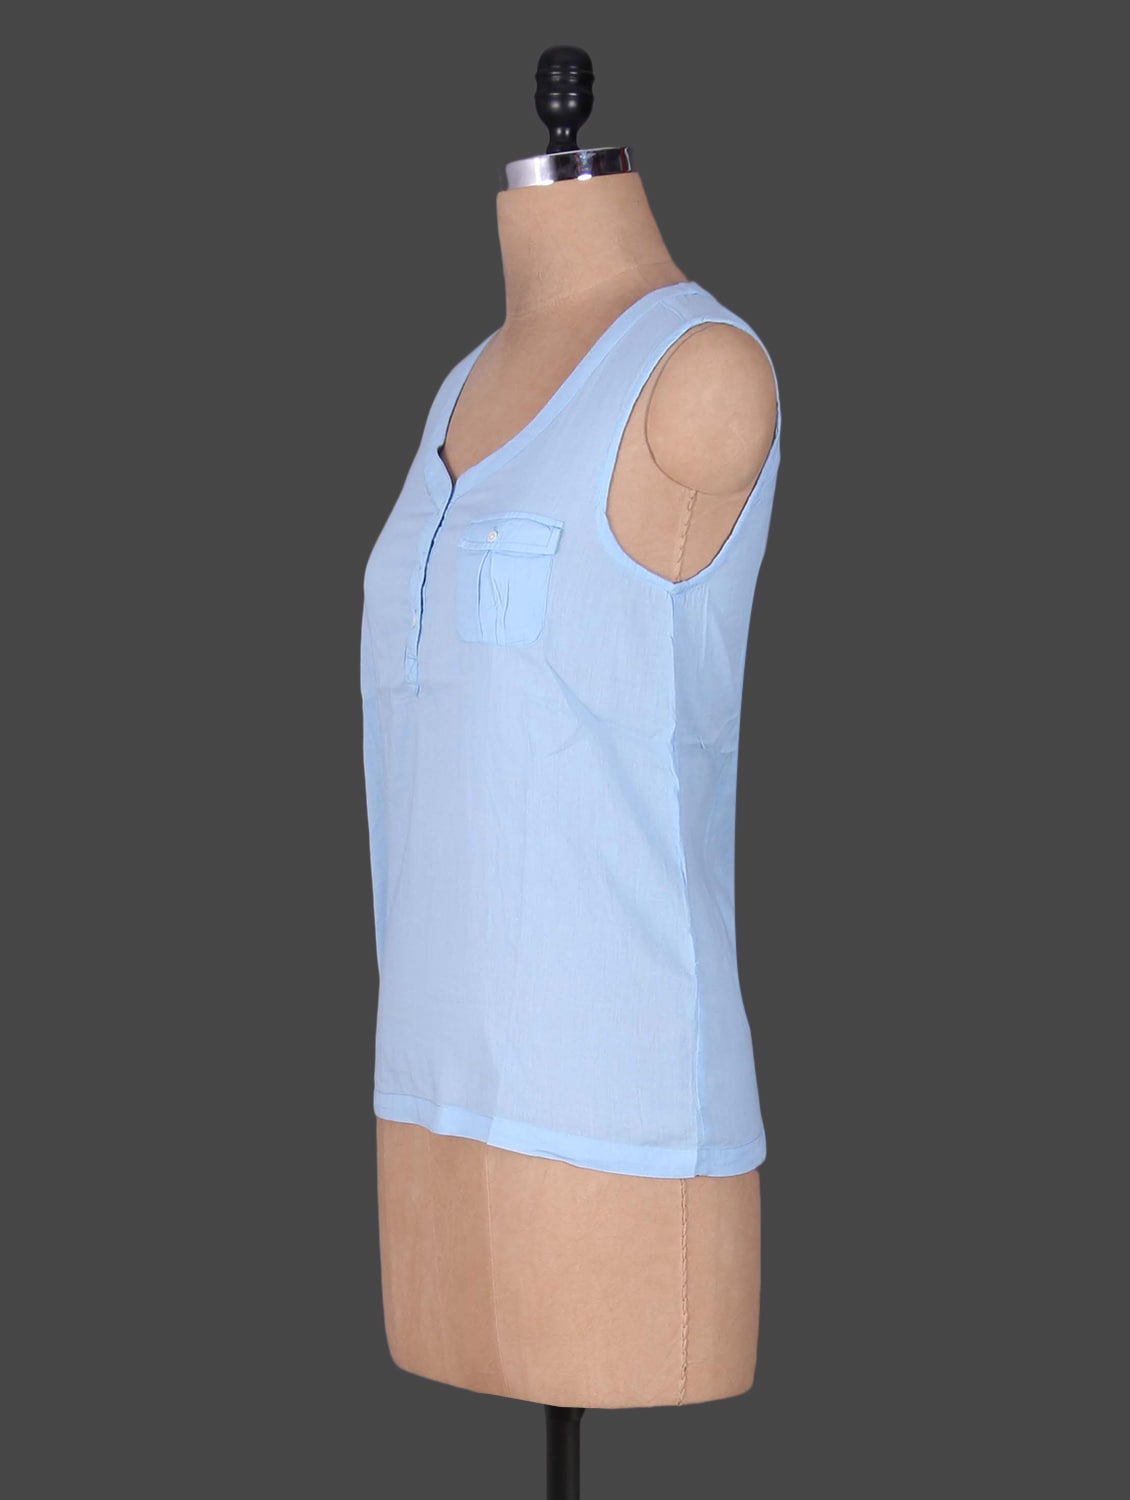 ab3b45d75fd997 Buy Solid Blue Cotton Sleeveless Top by Goodwill - Online shopping ...